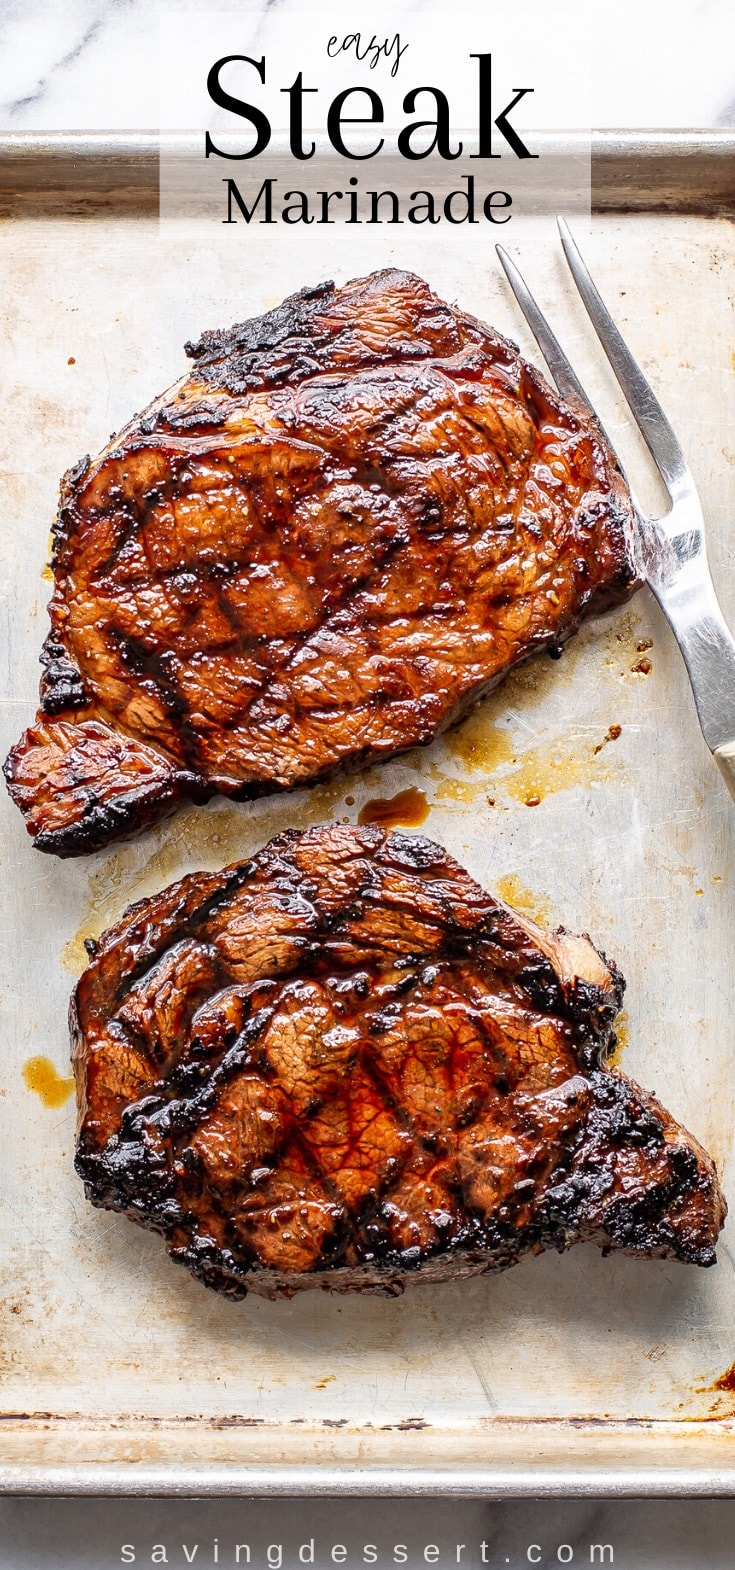 Two large, juicy grilled ribeye steaks on a small baking pan